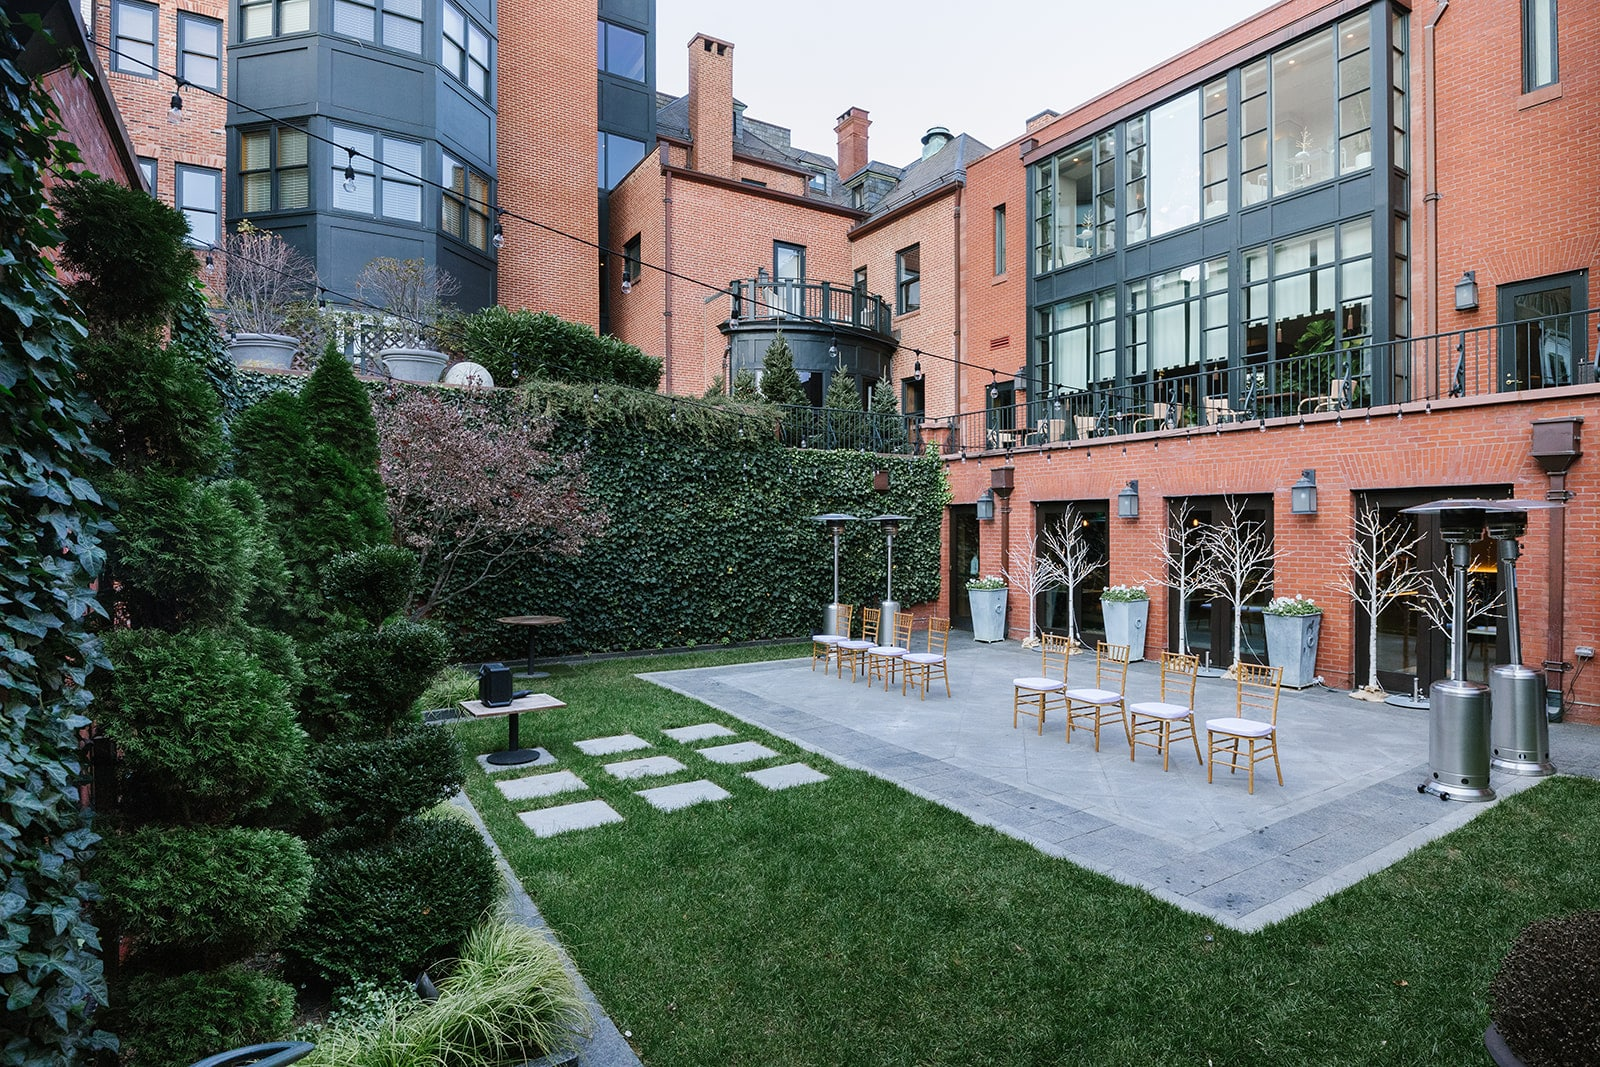 Courtyard of the Ivy with chairs for the wedding